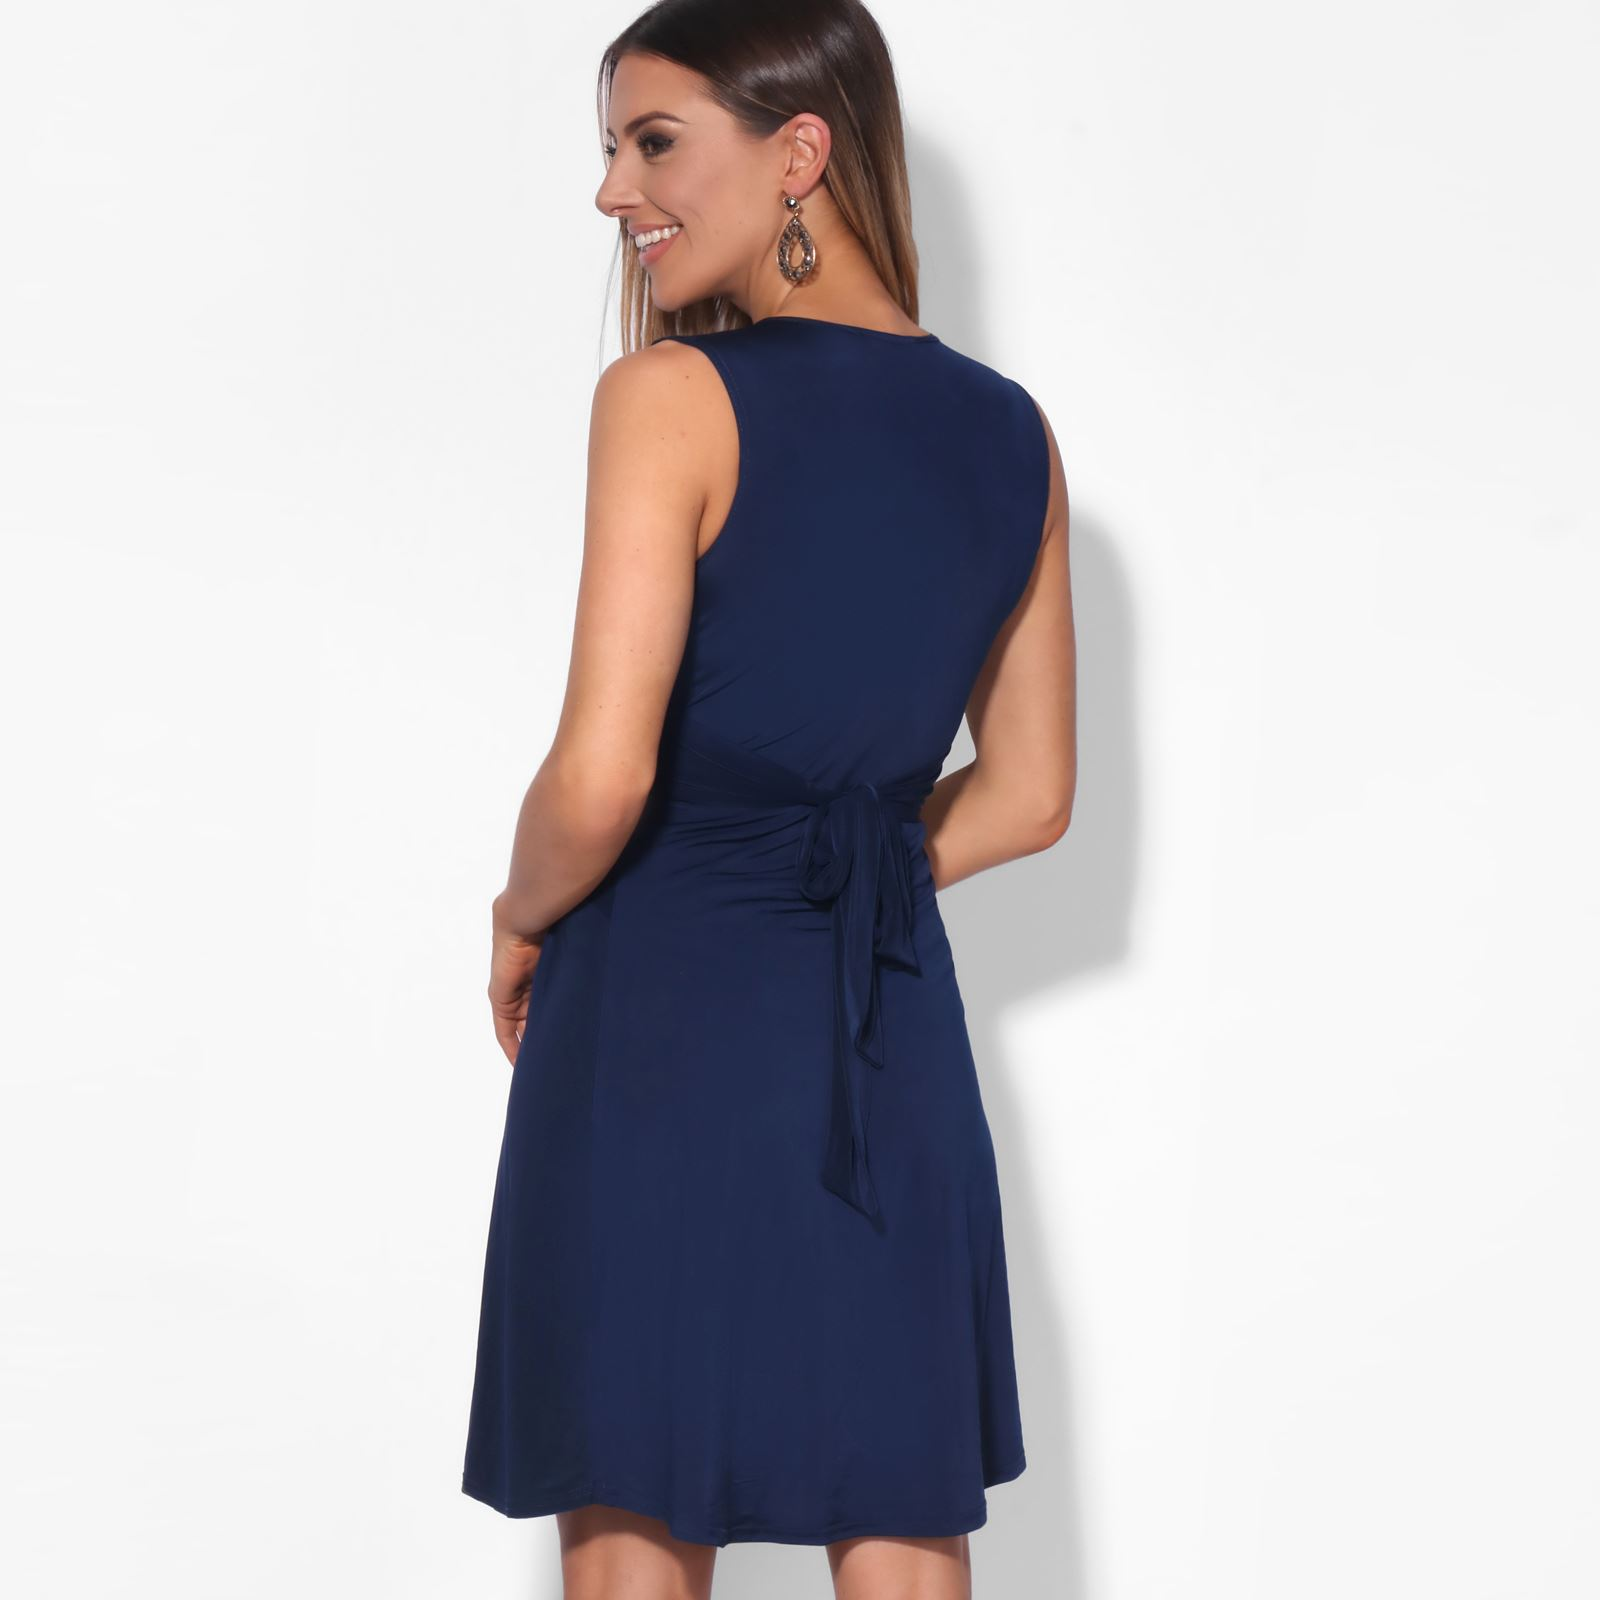 Robe-Femme-Courte-Patineuse-Decollete-Fronce-Elegante-Chic-N-ud-Cocktail-Mariage miniature 12